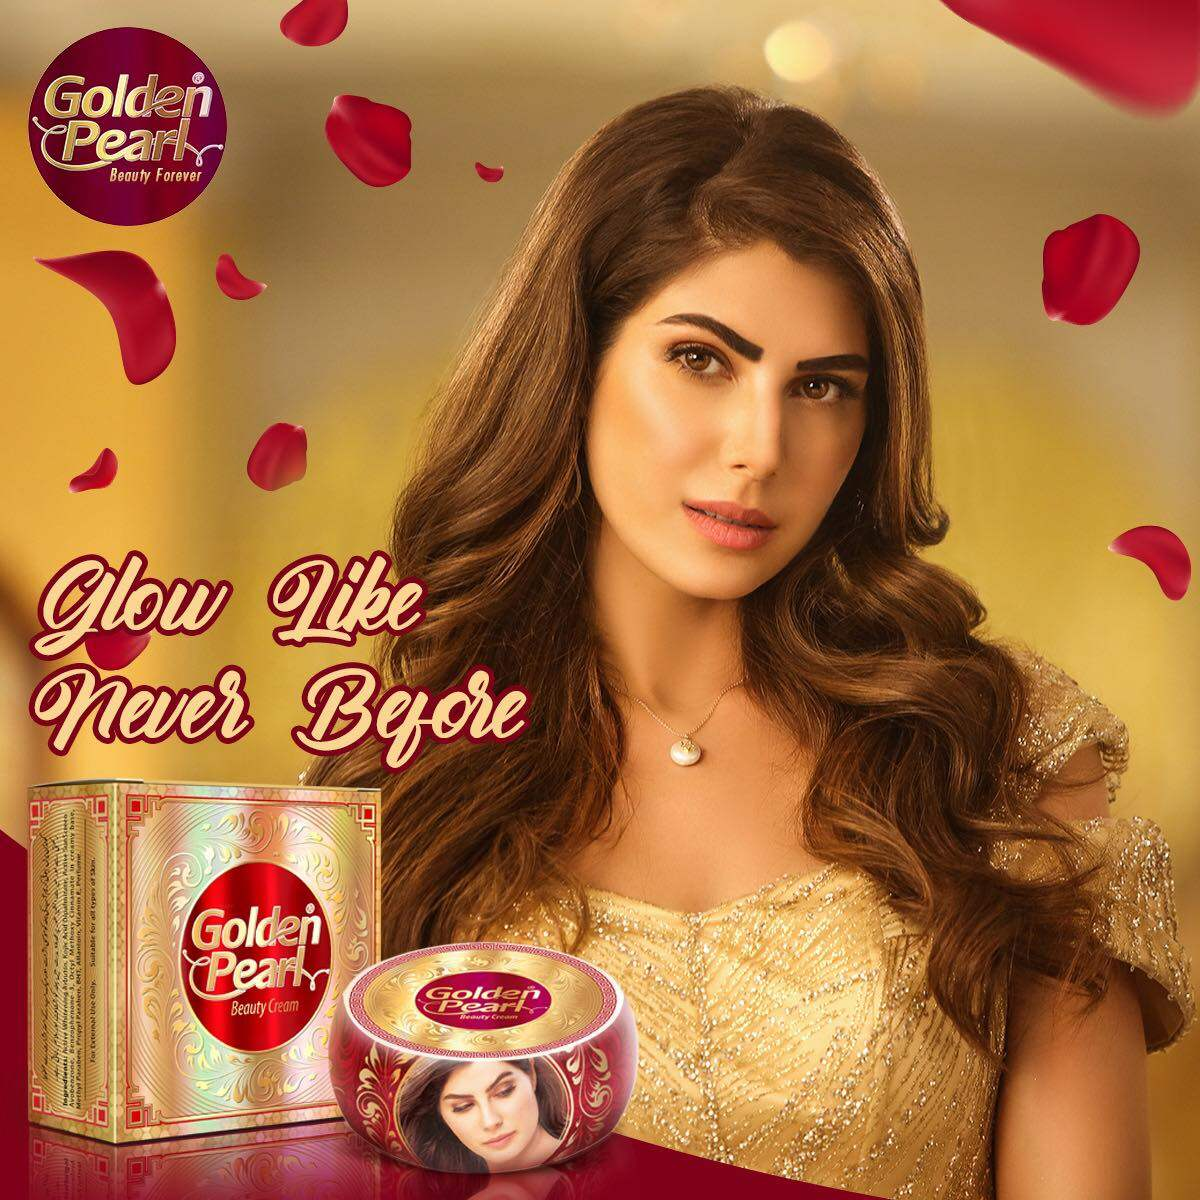 Golden Pear Whitening Cream For Smooth , Fair & Glowing Skin (Premium Quality) Special Price